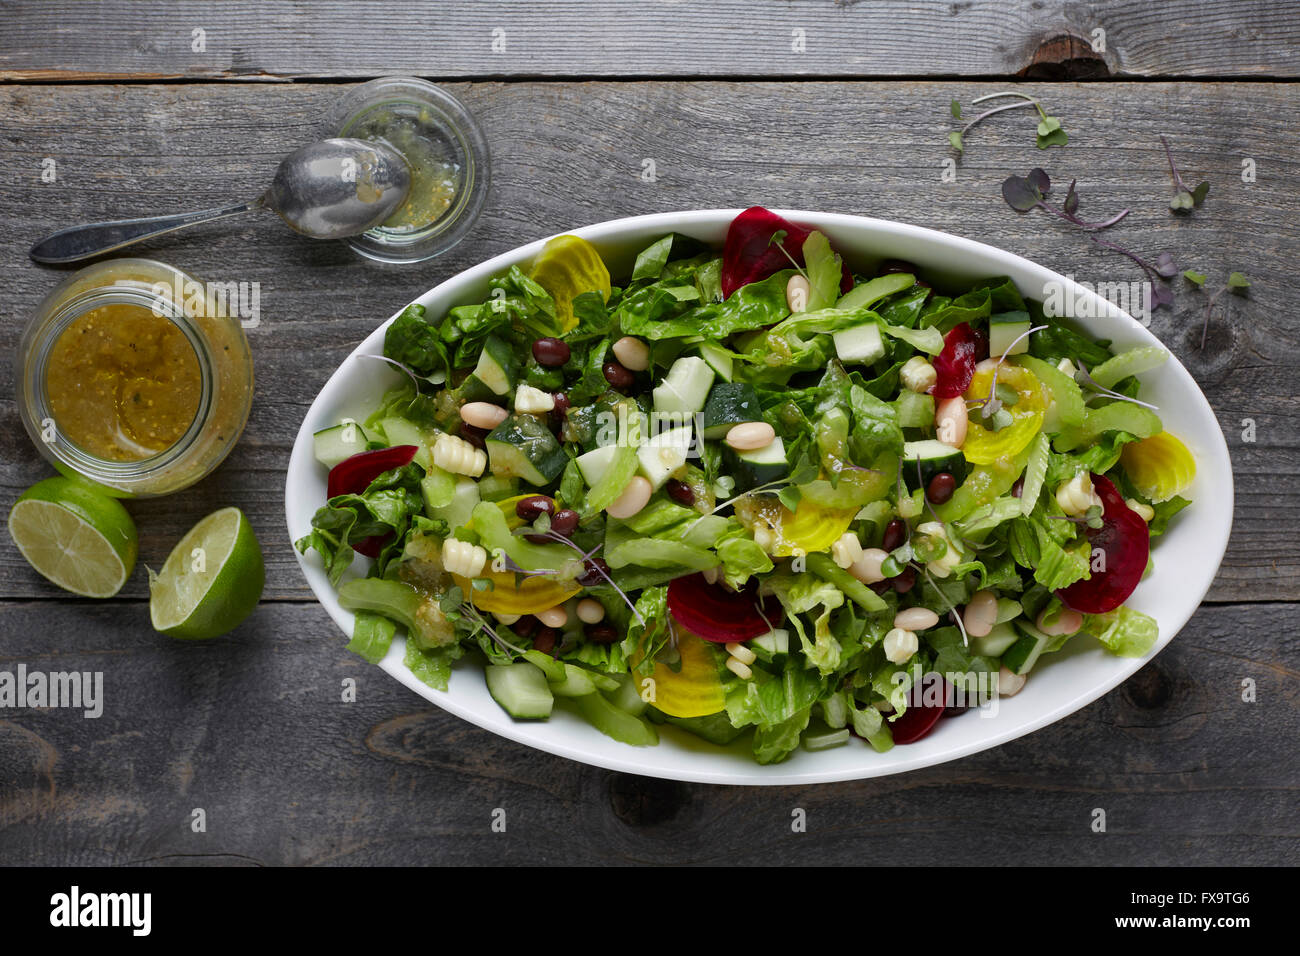 White ceramic bowl full of fresh mixed lettuce salad with healthy toppings, shot areal view with vinaigrette and Stock Photo